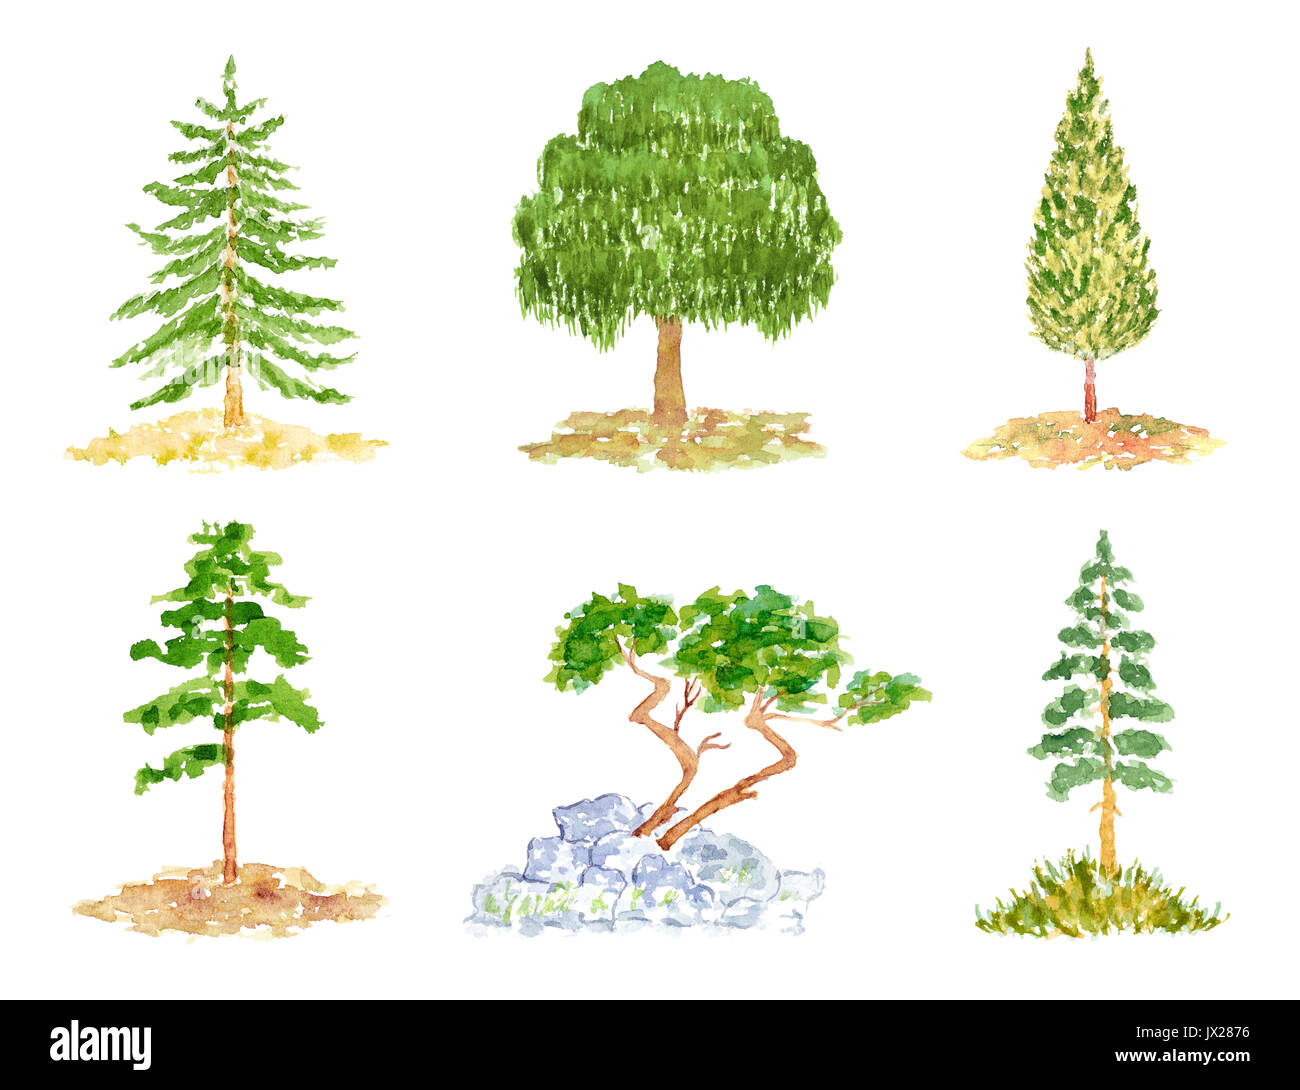 The tree has no leaves, but it does have. Set Of Cute Deciduous And Coniferous Trees Watercolor Hand Drawn And Painted Isolated On White Stock Photo Alamy